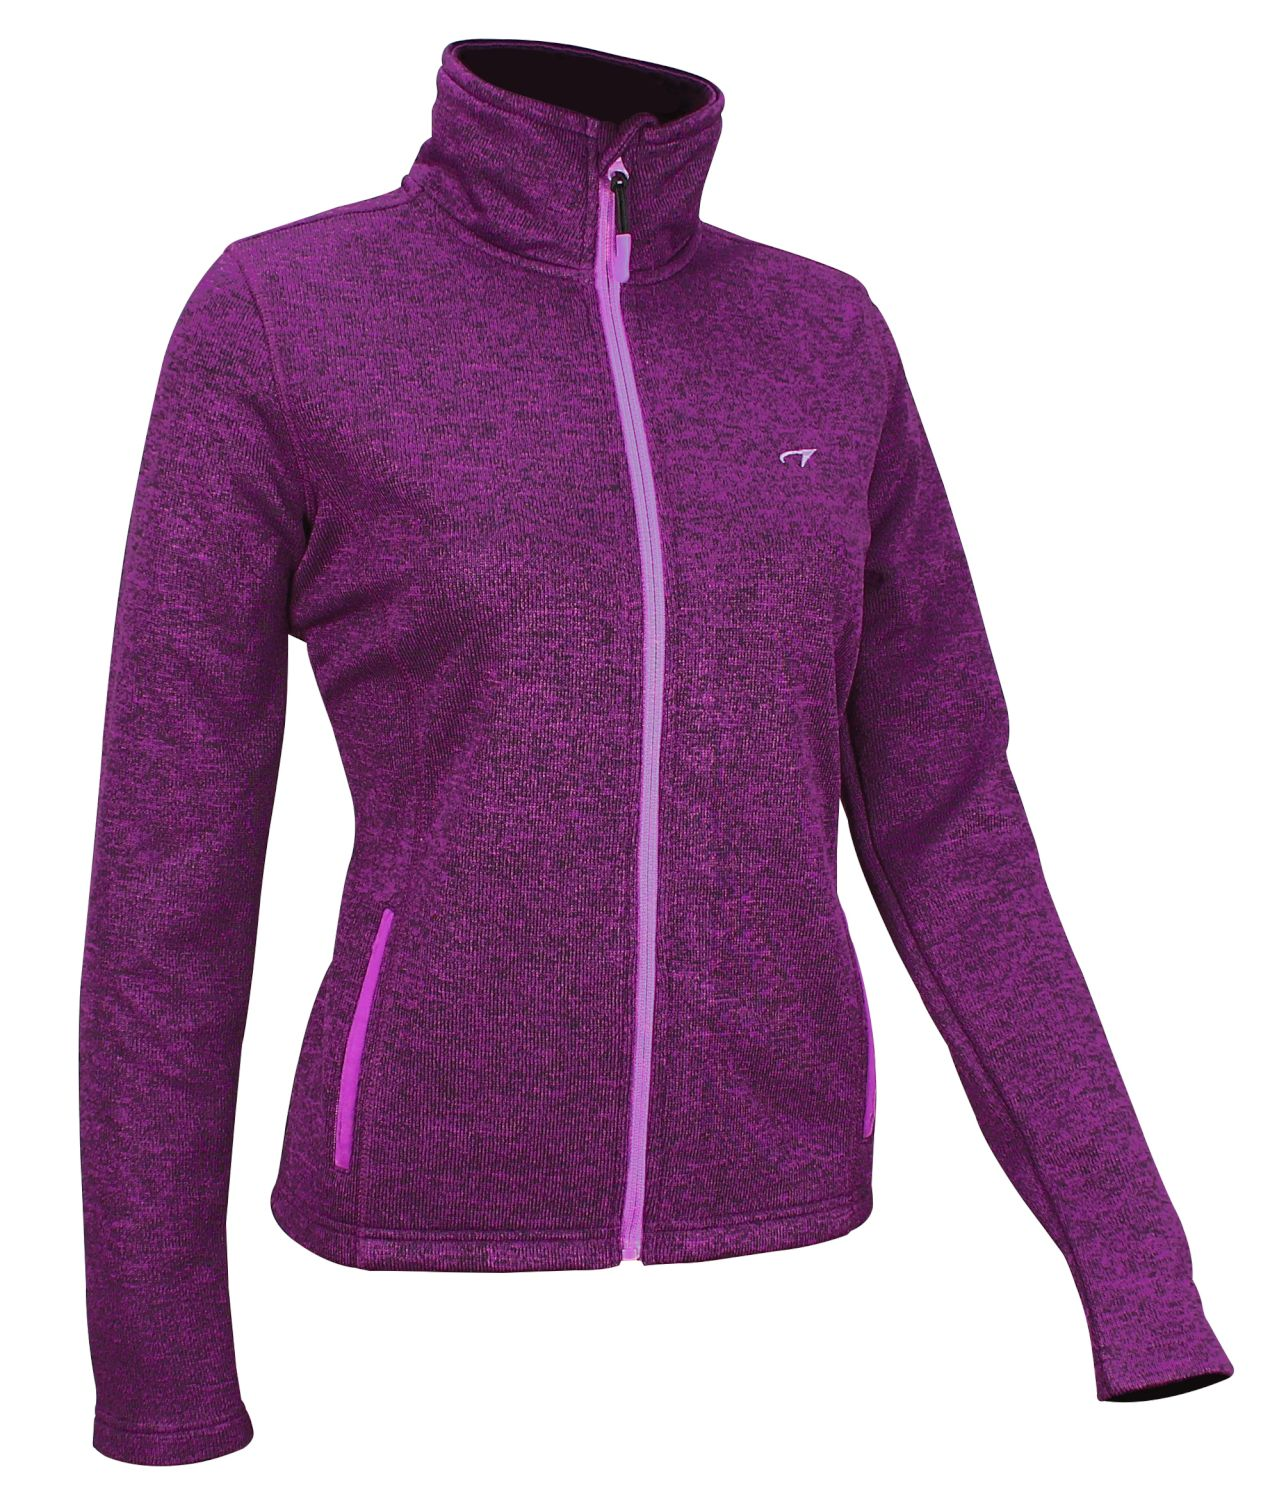 Windproof Jack Fleece • Dames •